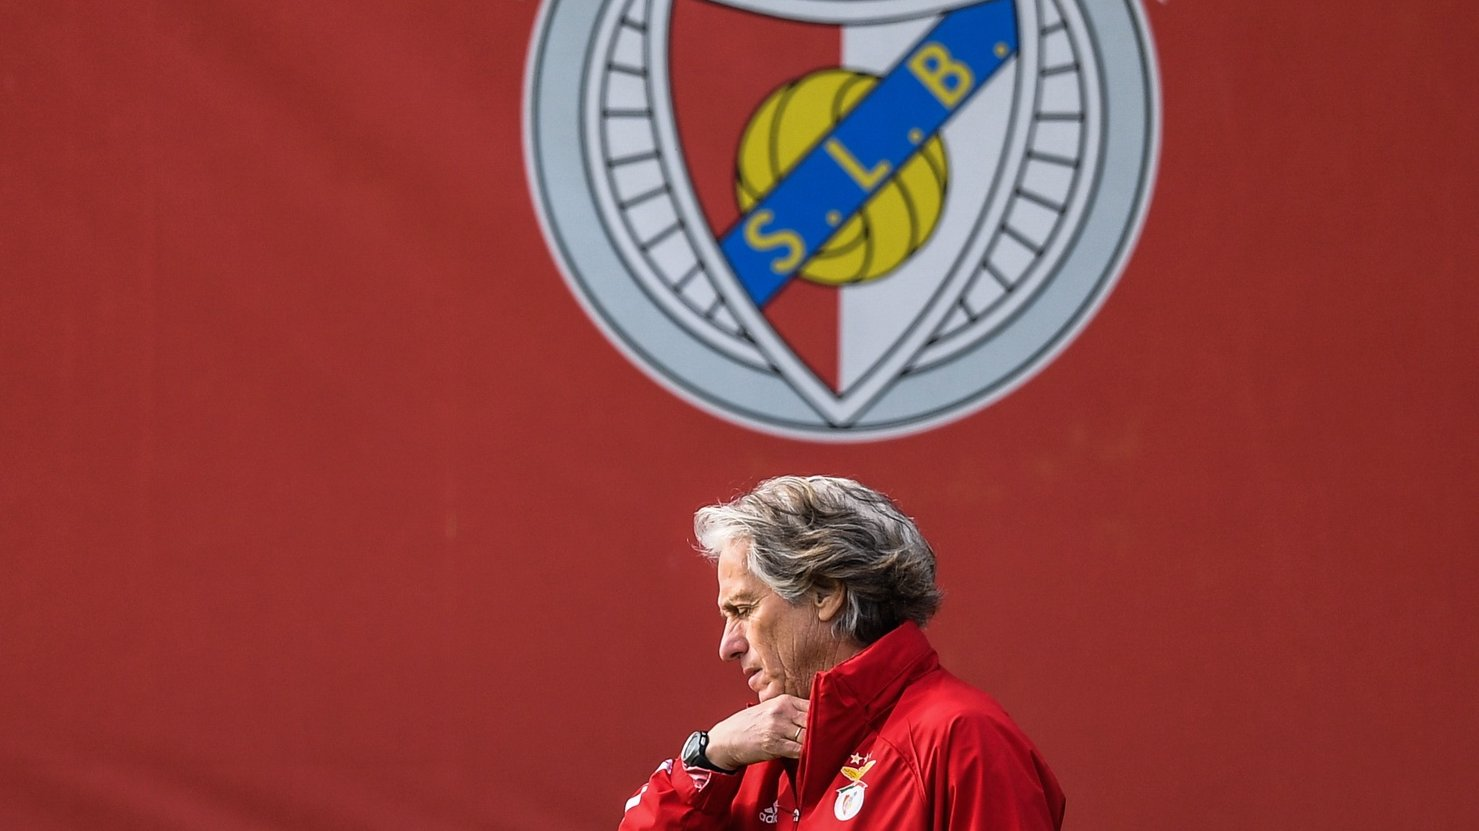 epa08872248 SL Benfica's coach Jorge Jesus leads a training session at Benfica Campus in Seixal, near Lisbon, Portugal, 9 December 2020. SL Benfica will play against Standard Liege in their UEFA Europa League Group D match on 10 December 2020.  EPA/MARIO CRUZ